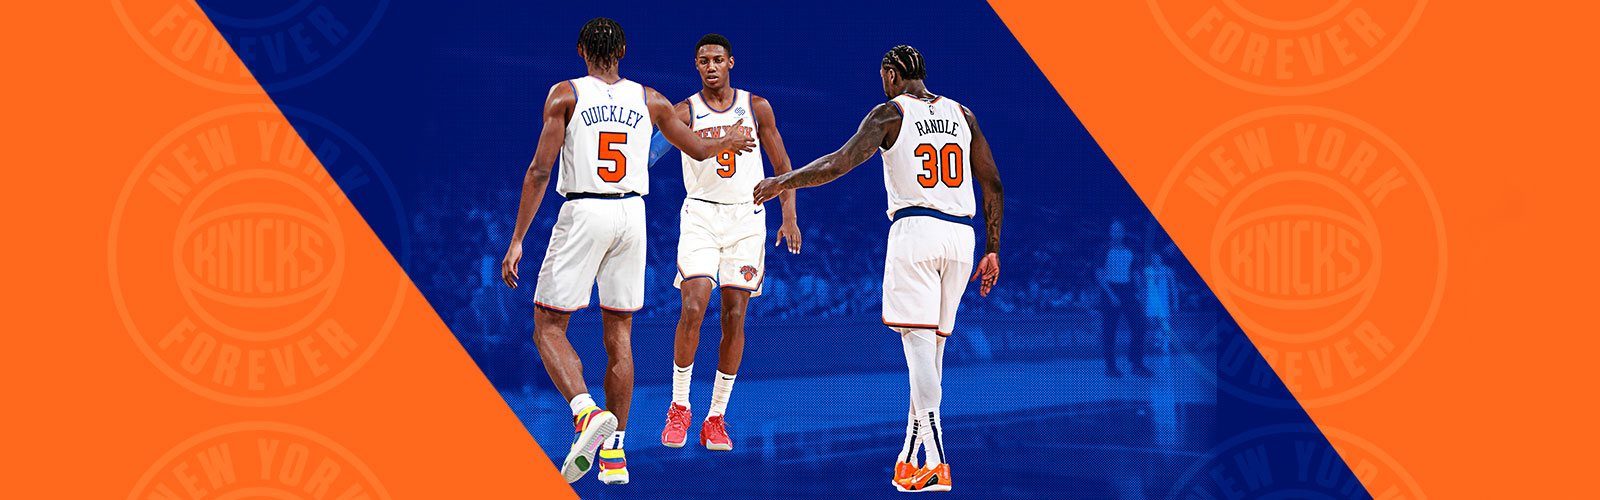 New York Knicks Announce Second Half of 2020-21 Schedule